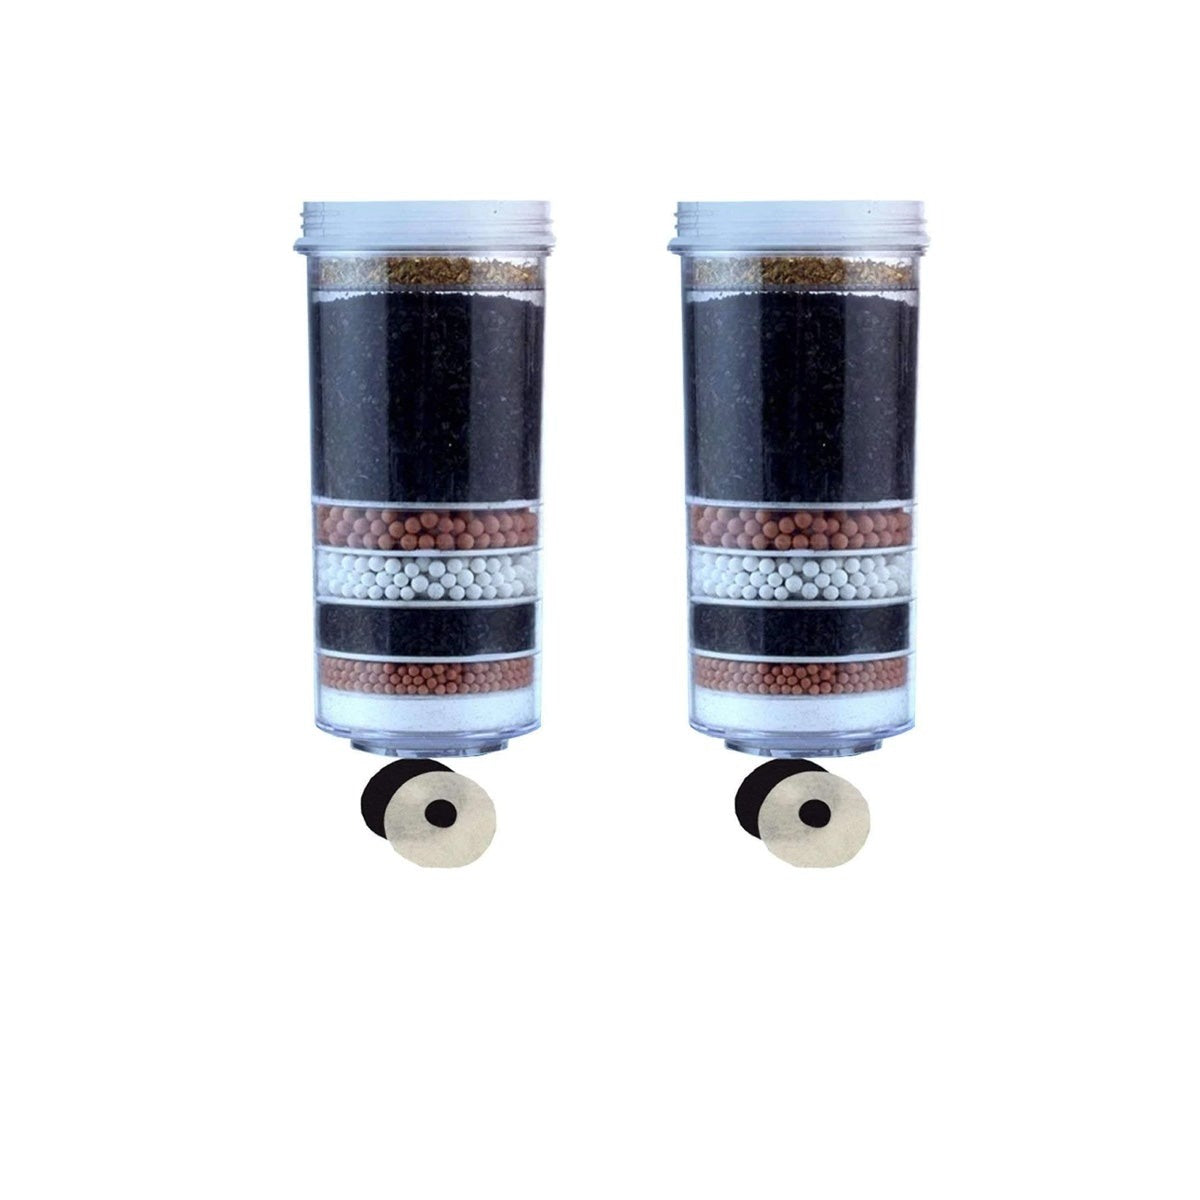 Awesome Aimex Water Filter MDM Activated Charcoal 8 Stage Filter 2X - MDMAustralian